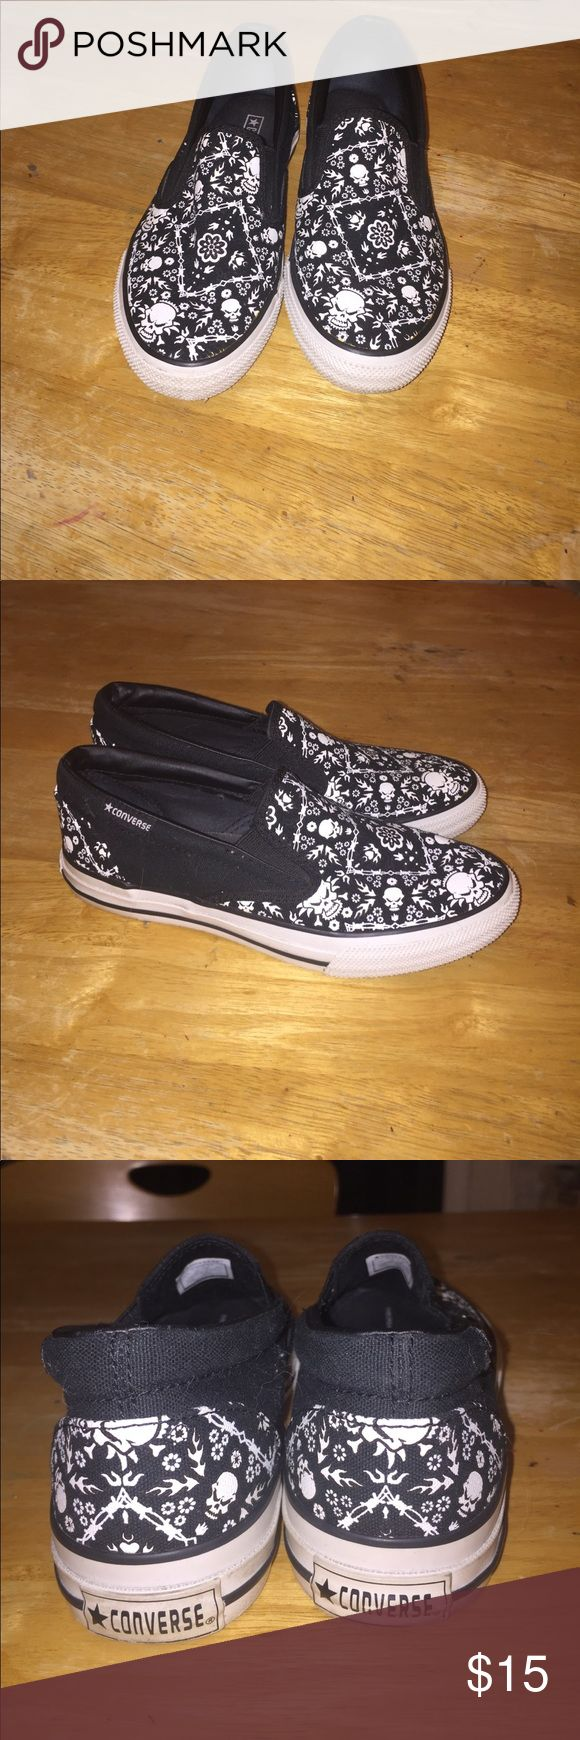 Black and White Converse Slides Cute and easy black and white design slides. Easily go with almost every outfit! Make an offer and I'll get back to it ASAP!! Converse Shoes Espadrilles